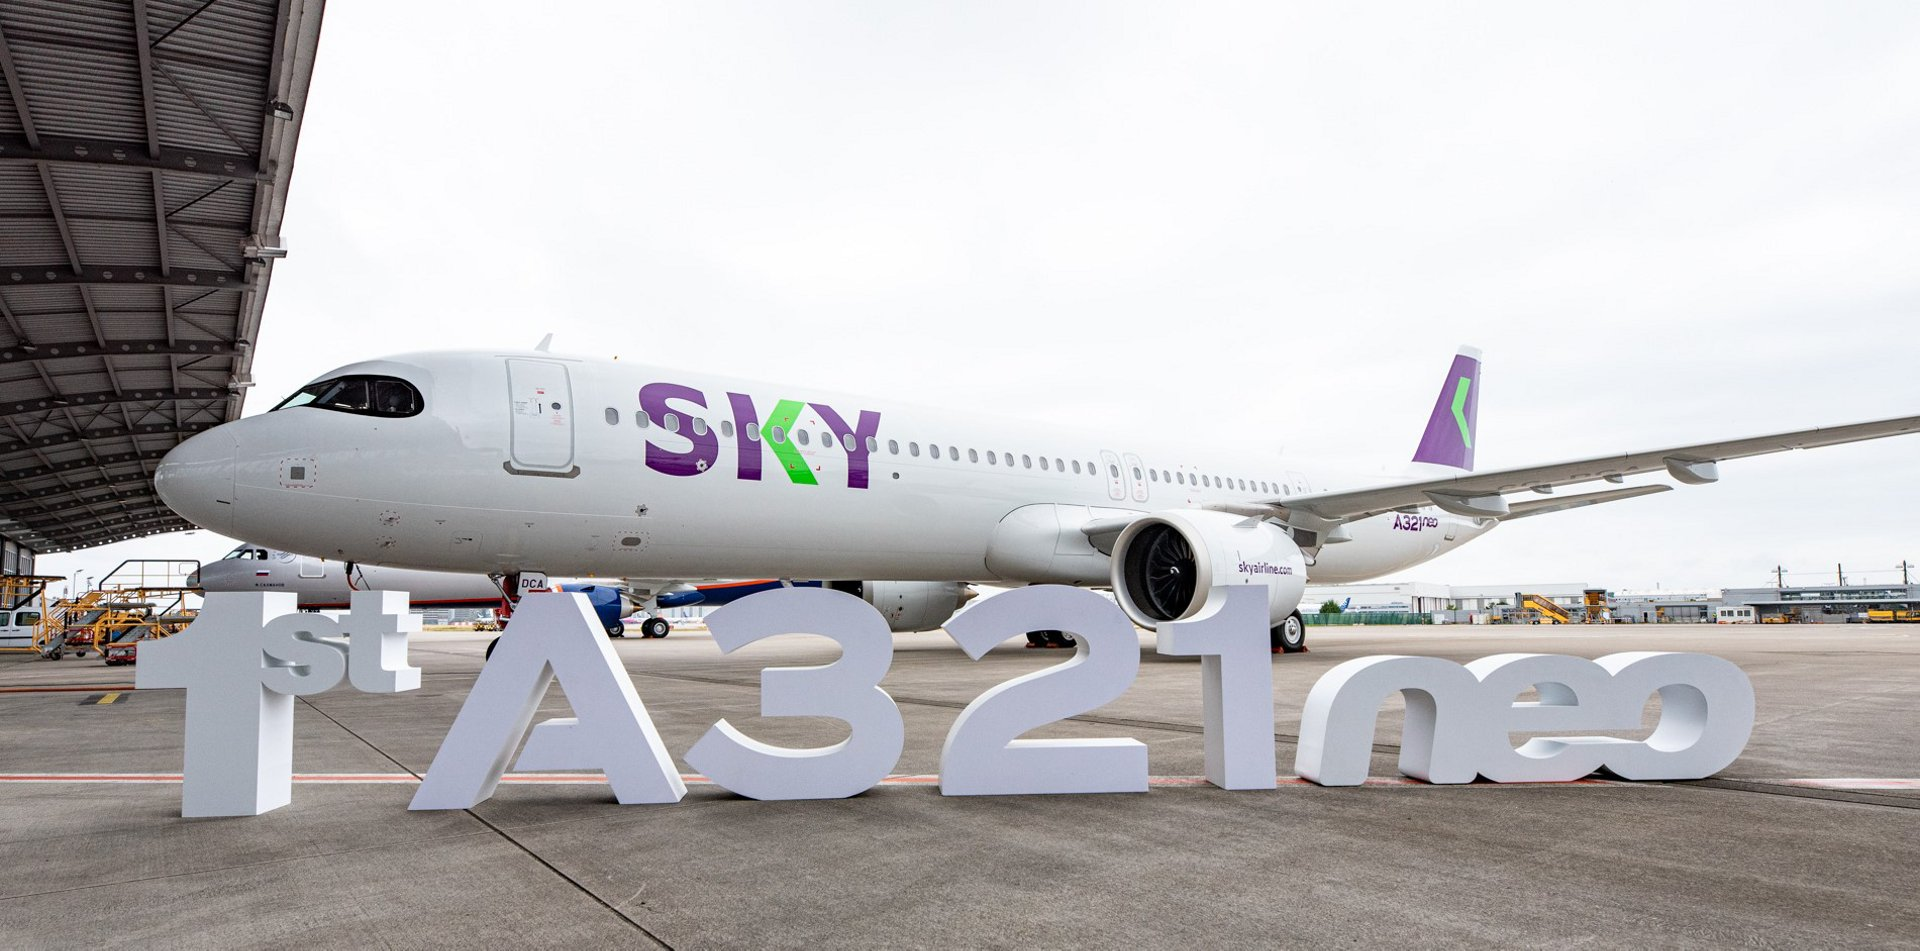 SKY, a Chilean-based low-cost carrier, has taken delivery of its first A321neo leased from Air Lease Corporation (NYSE: AL), becoming the first airline in Chile to operate the A321neo.